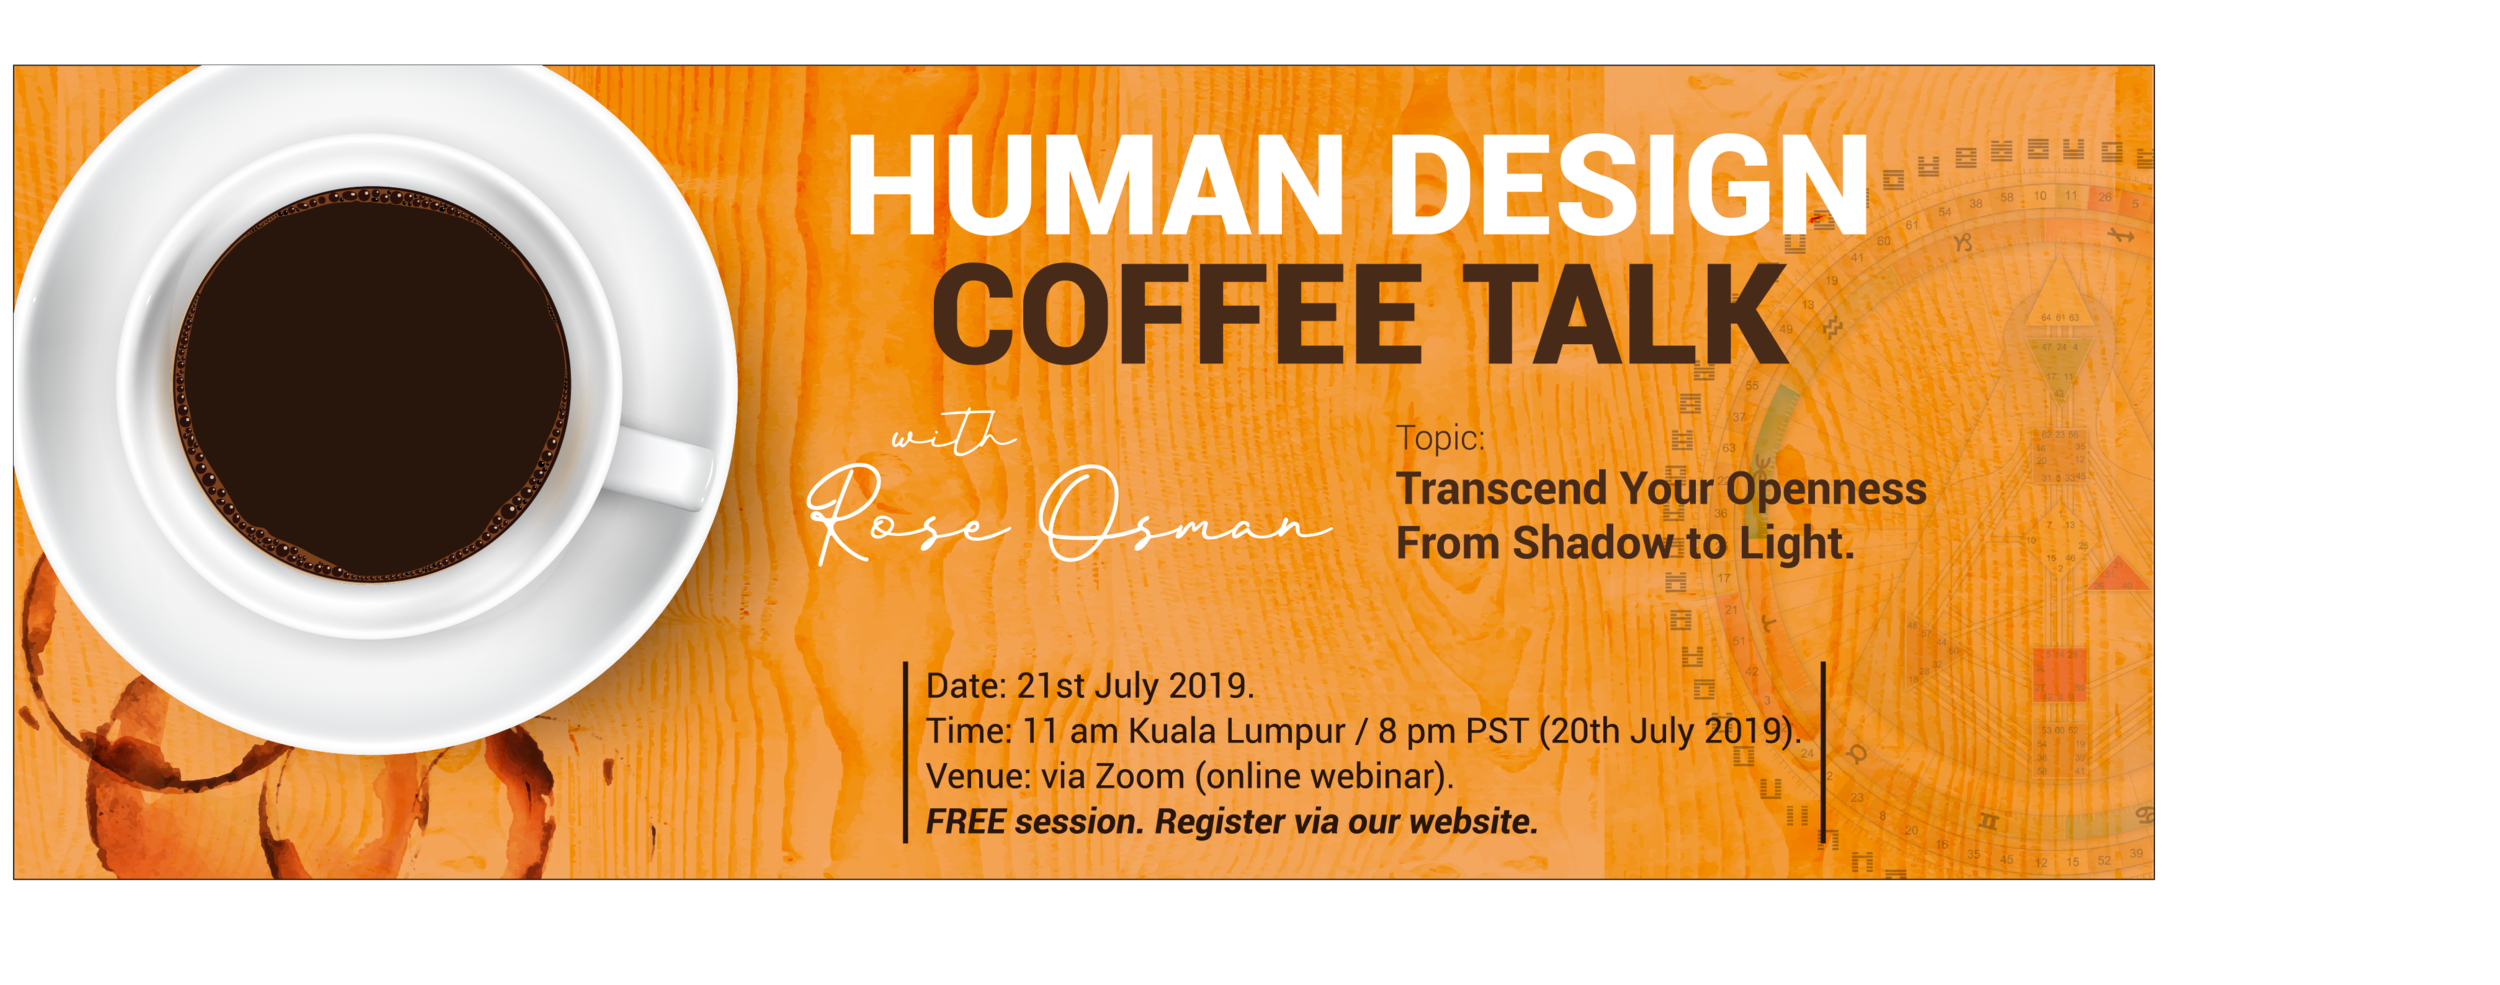 Upcoming Free Event - Coffee Talk about Human Design. Register HERE.